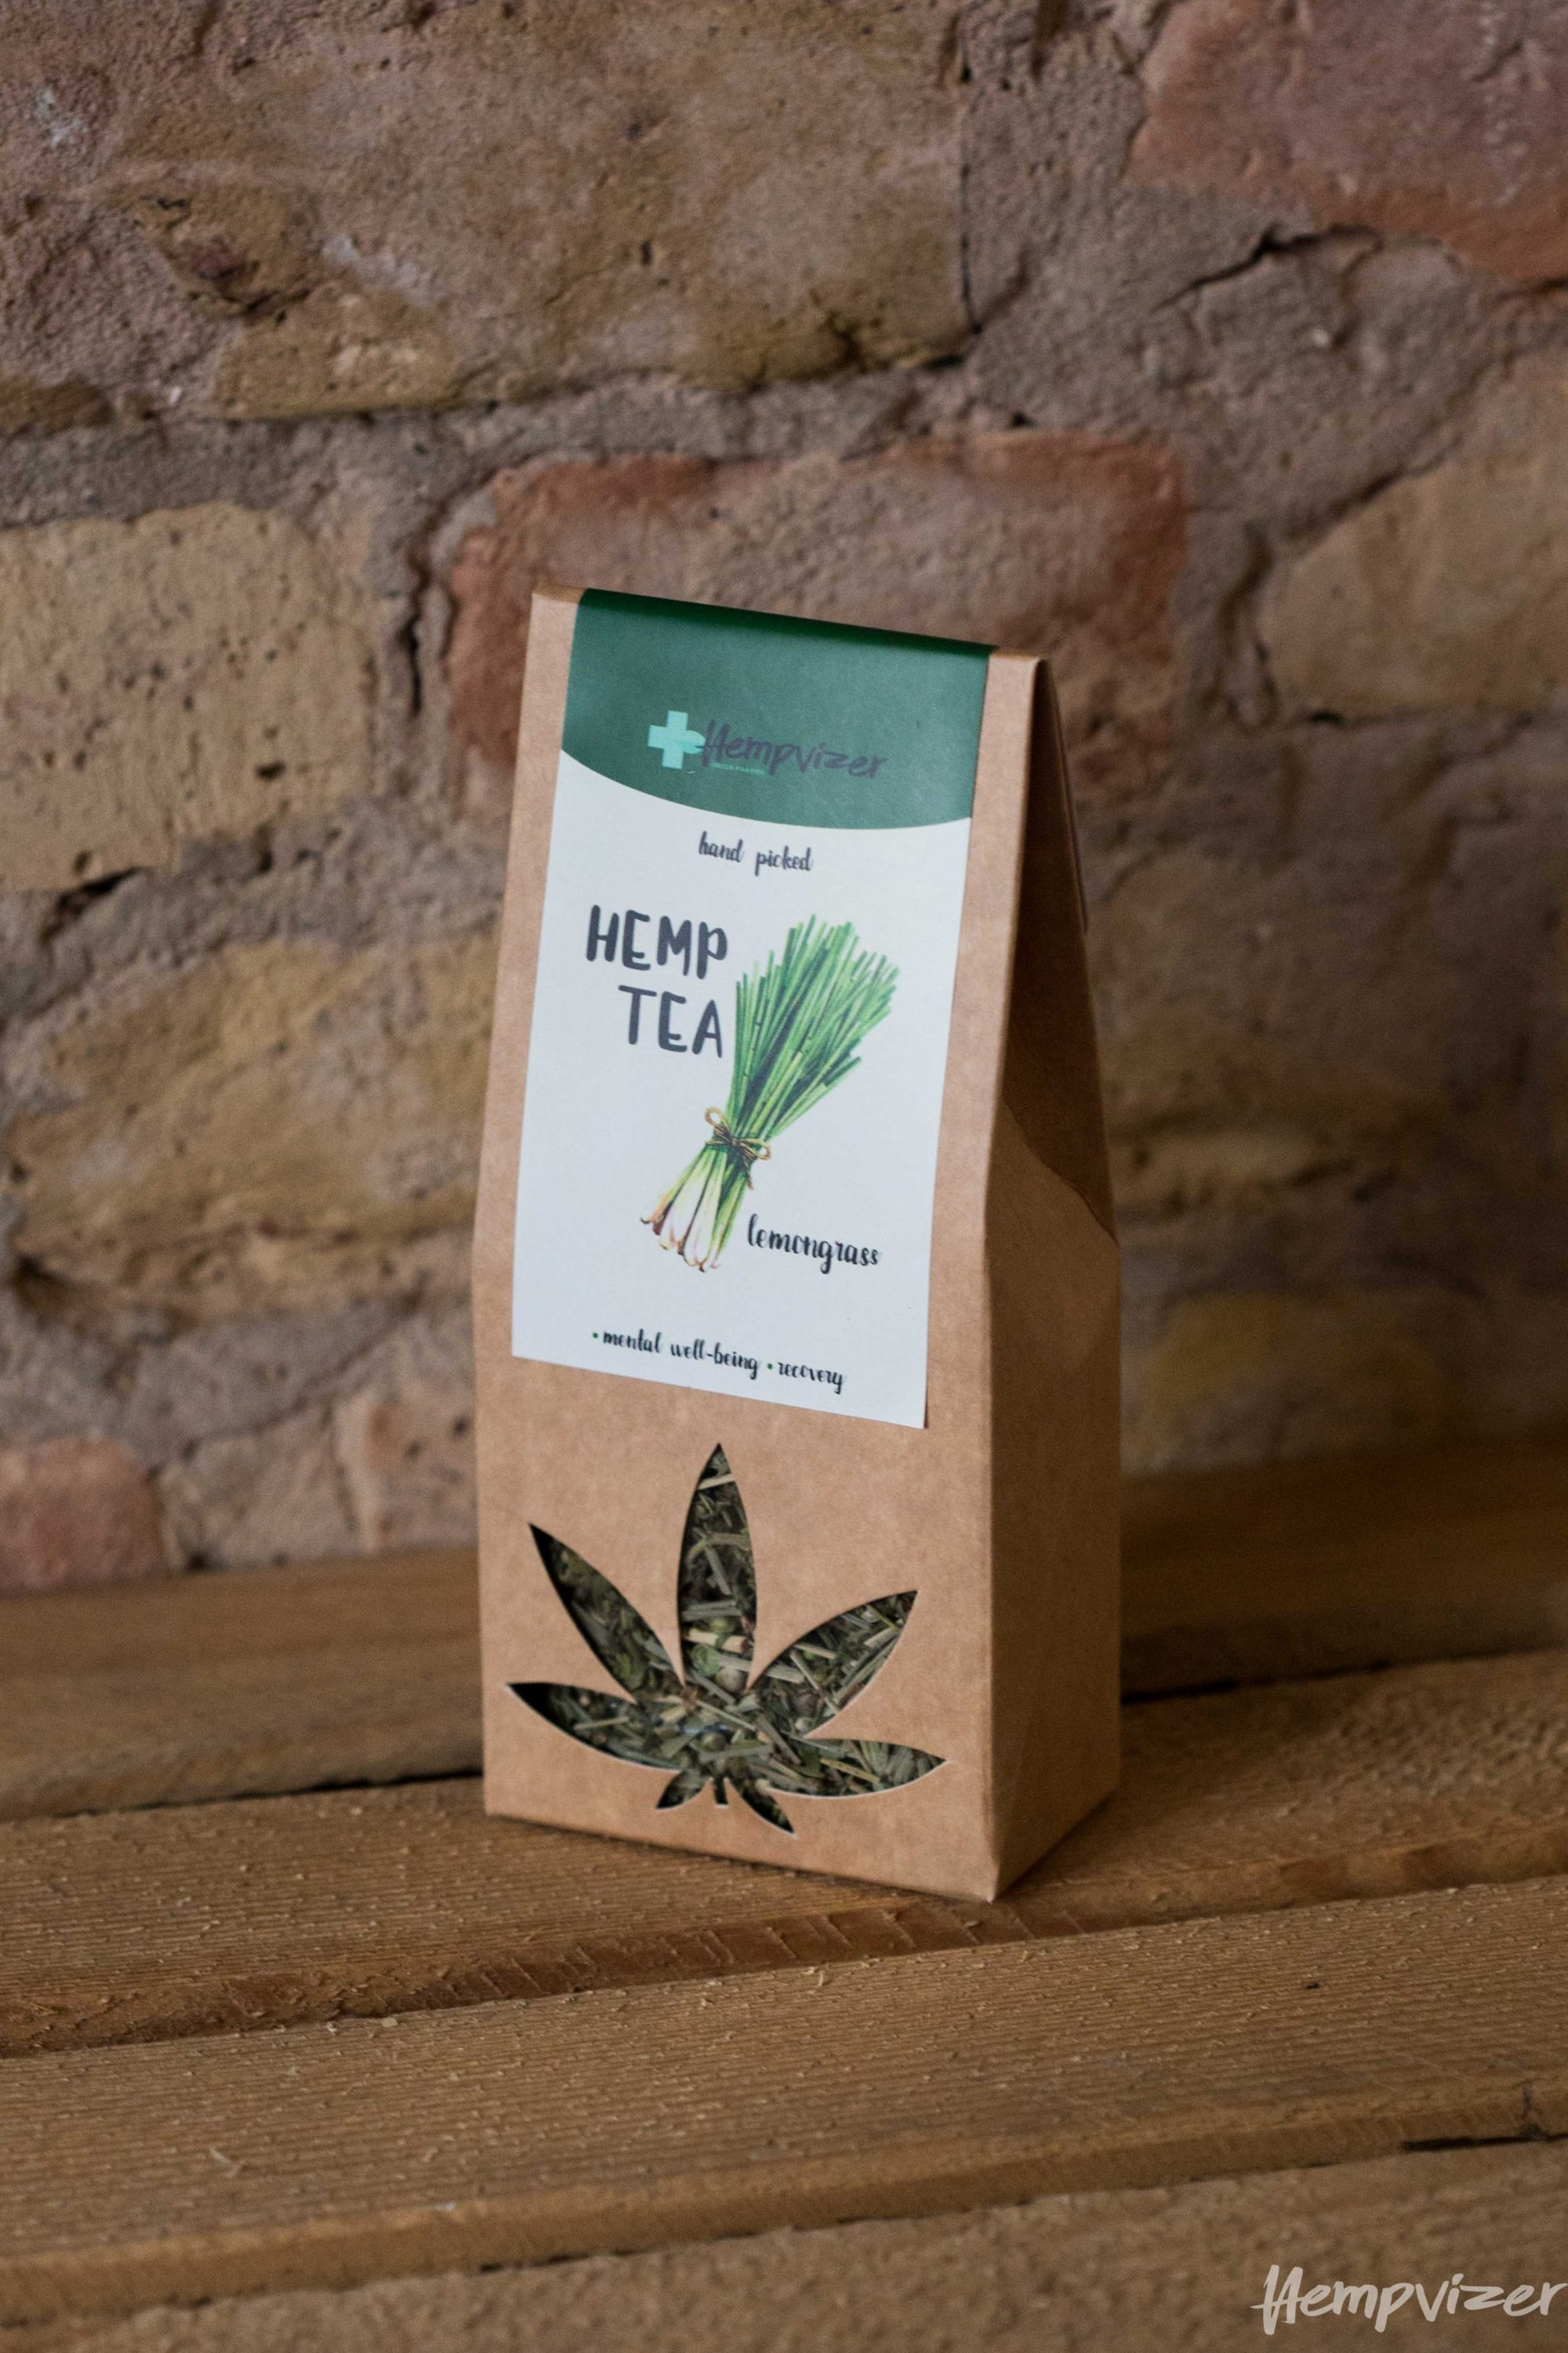 Hempvizer Hemp tea with lemon grass